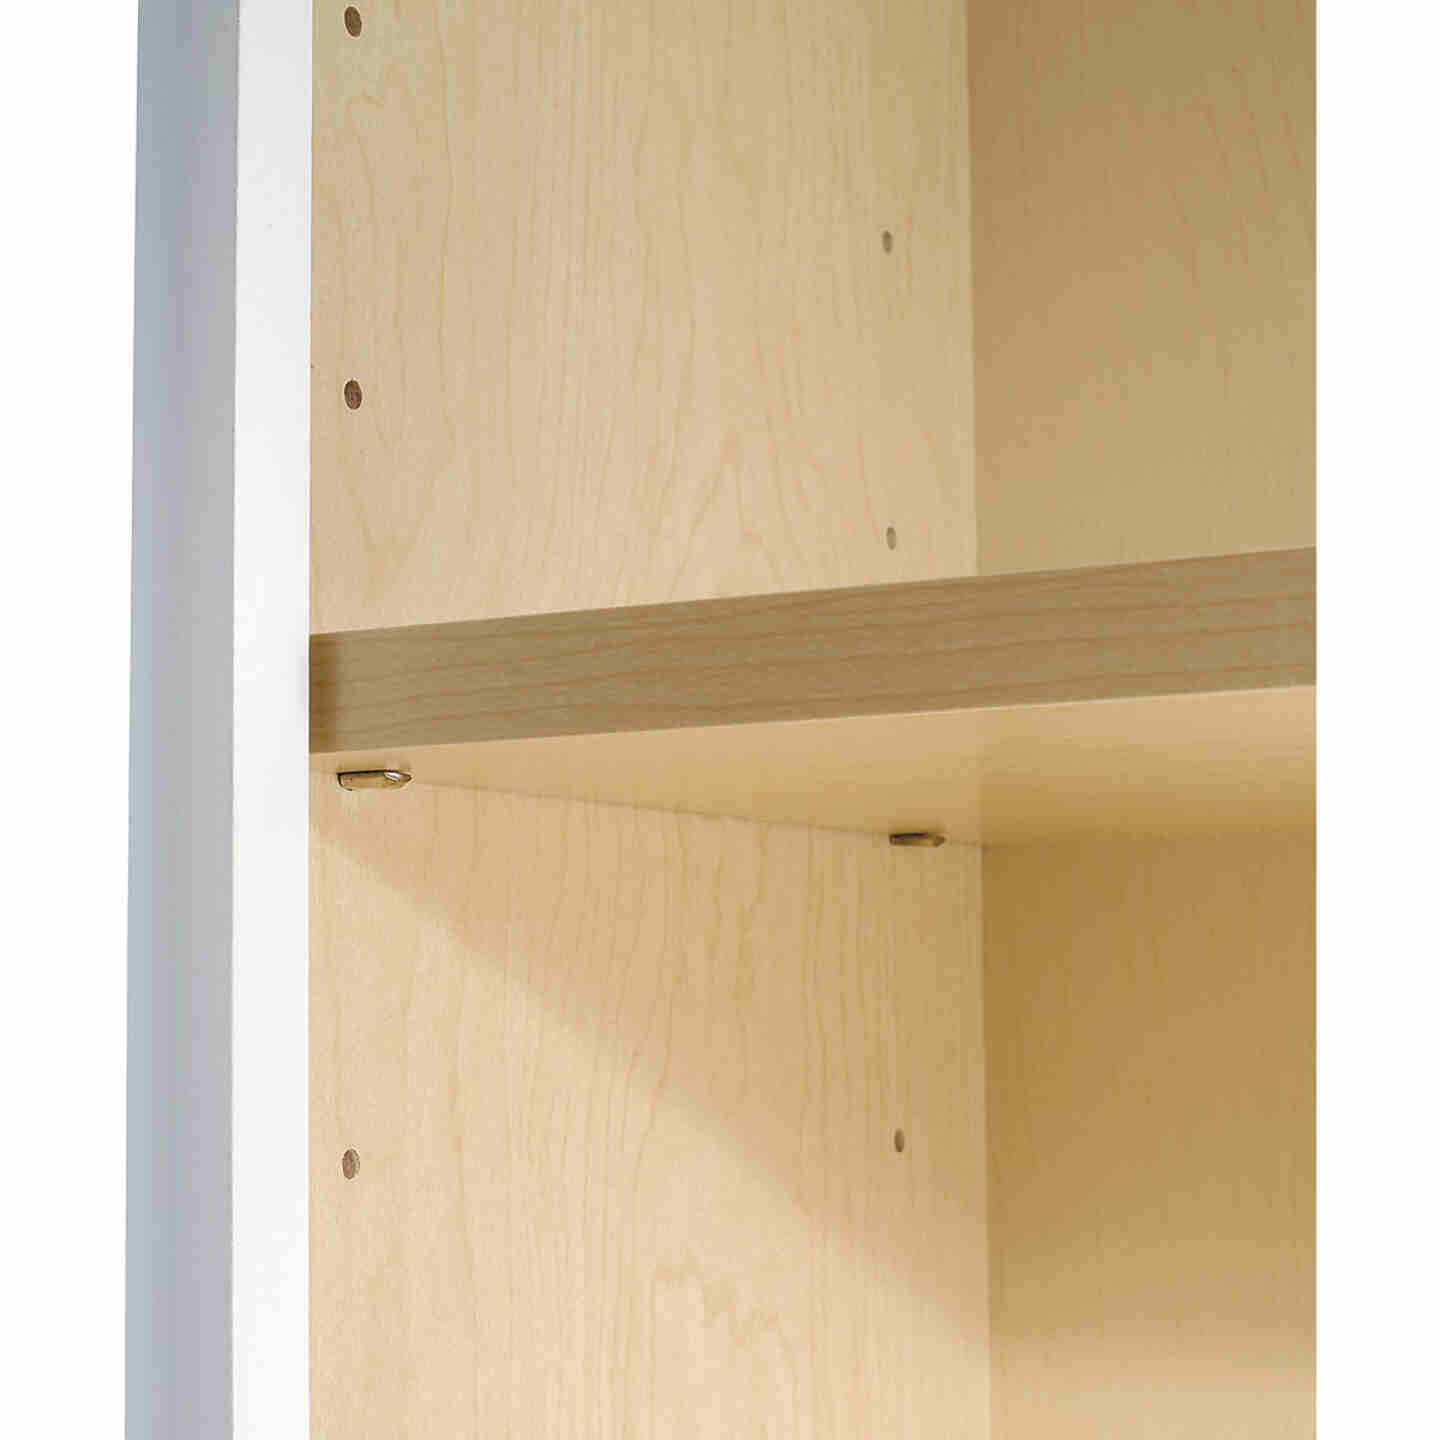 Continental Cabinets Andover Shaker 30 In. W x 30 In. H x 12 In. D White Thermofoil Wall Kitchen Cabinet Image 5